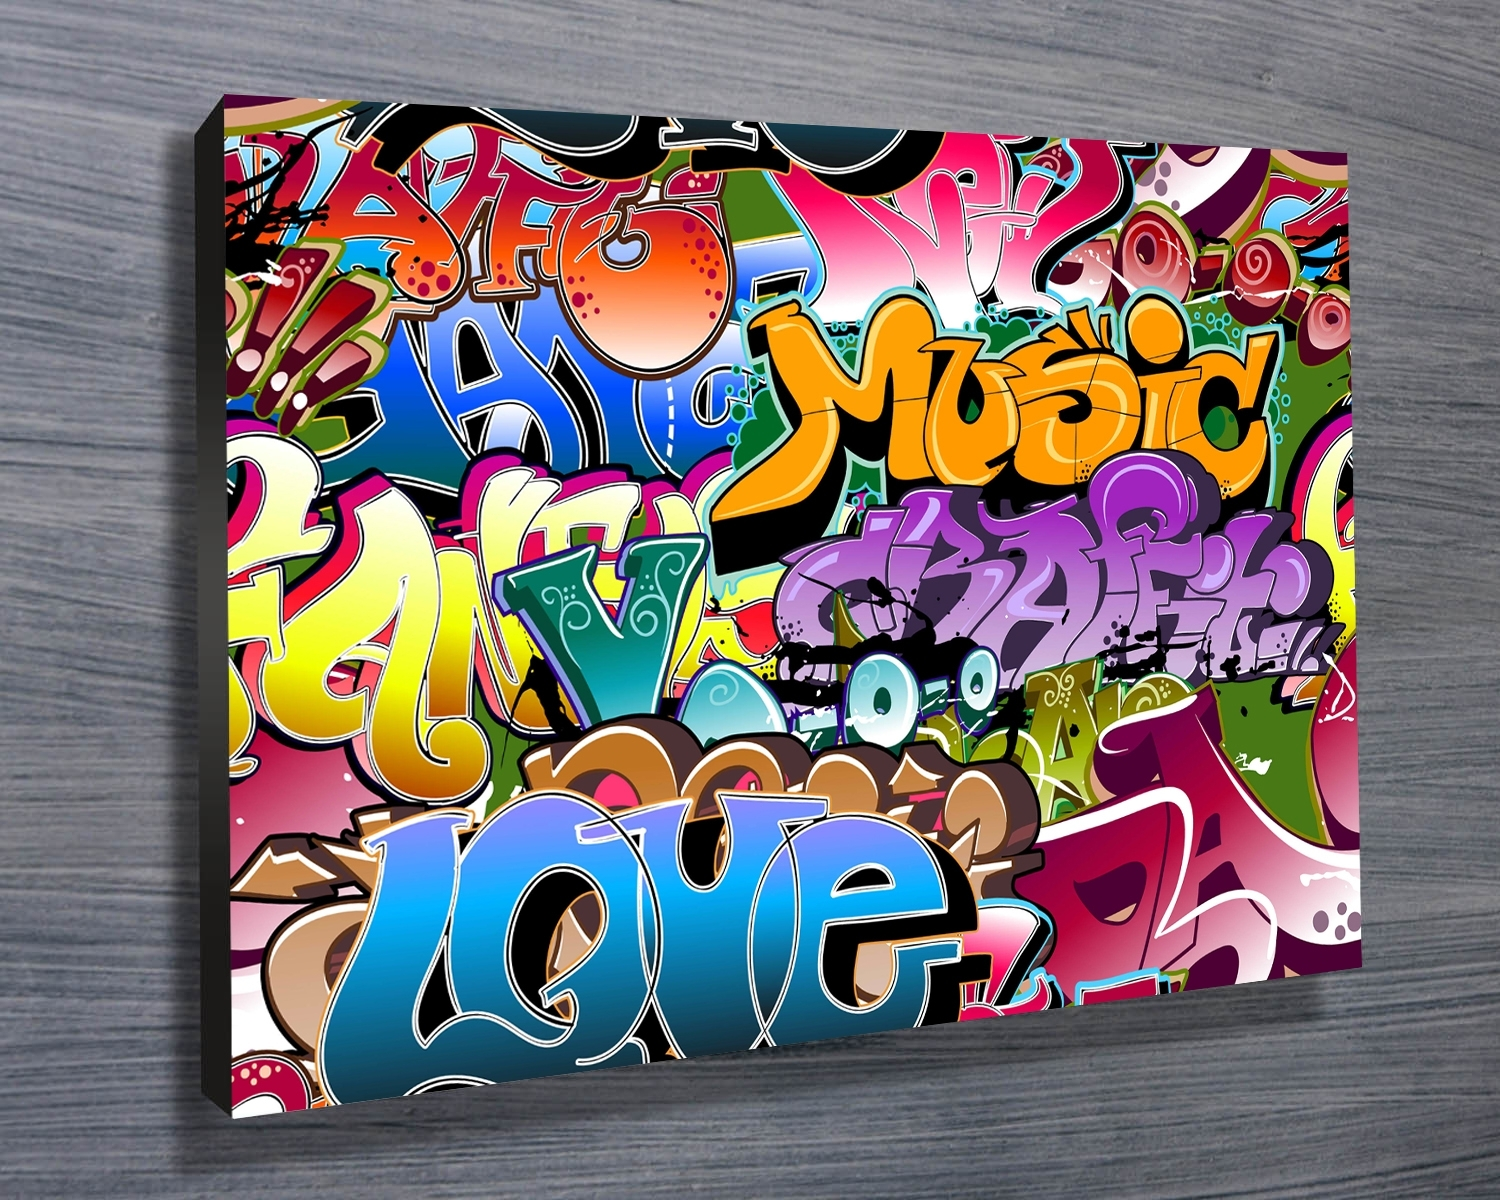 Graffiti Art Letters Beautiful Wall Art Ideas Design Beautiful For Latest Abstract Graffiti Wall Art (View 11 of 20)